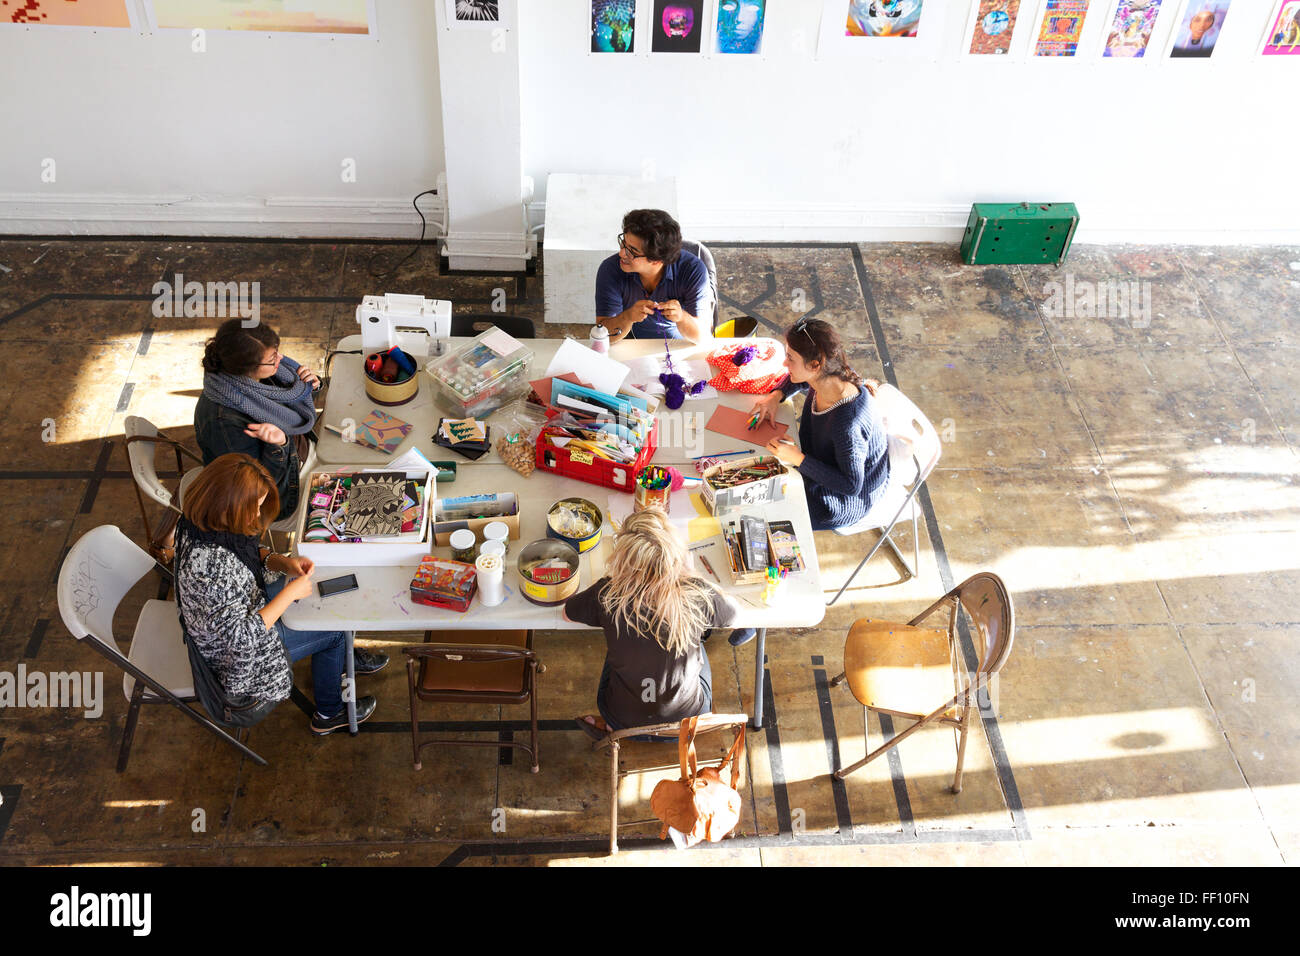 Five people sitting around a table with crafting supplies in a bright sunny space, each working on his or her project Stock Photo